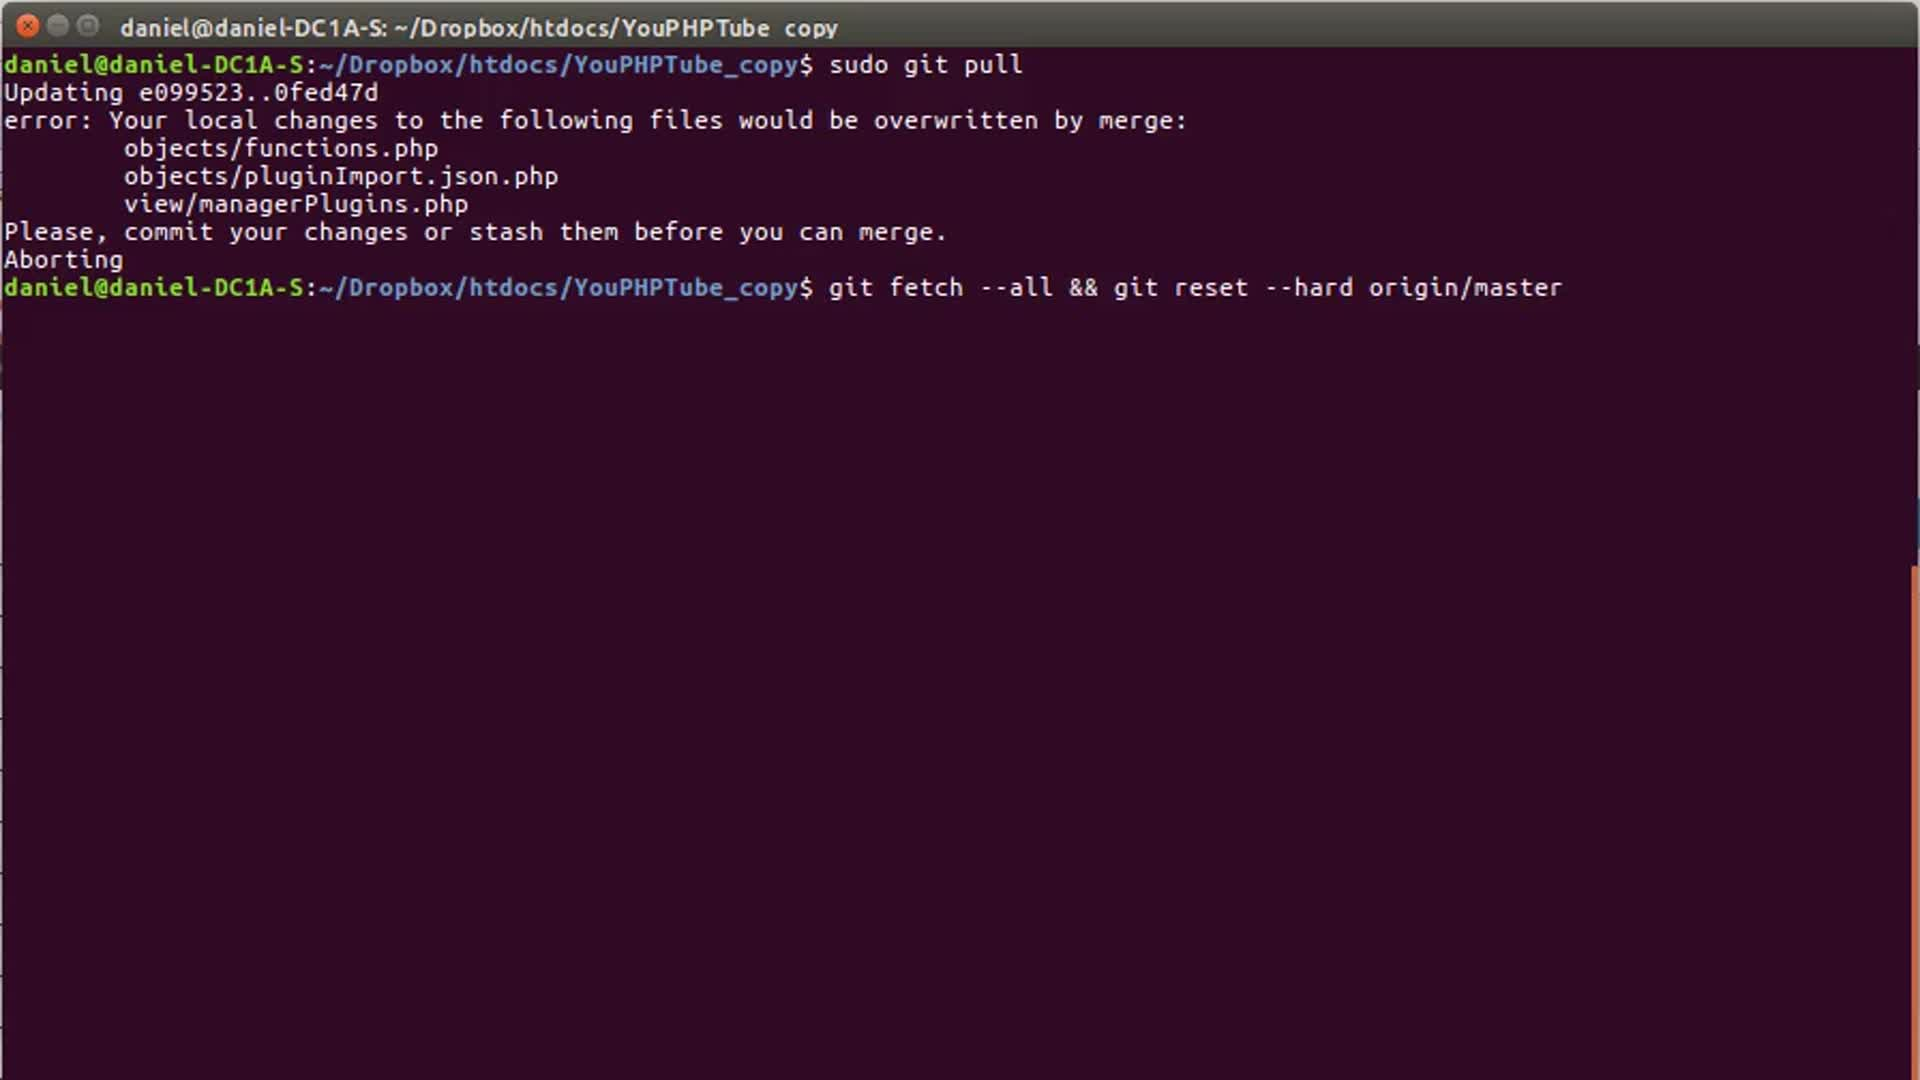 Force Git to Overwrite files